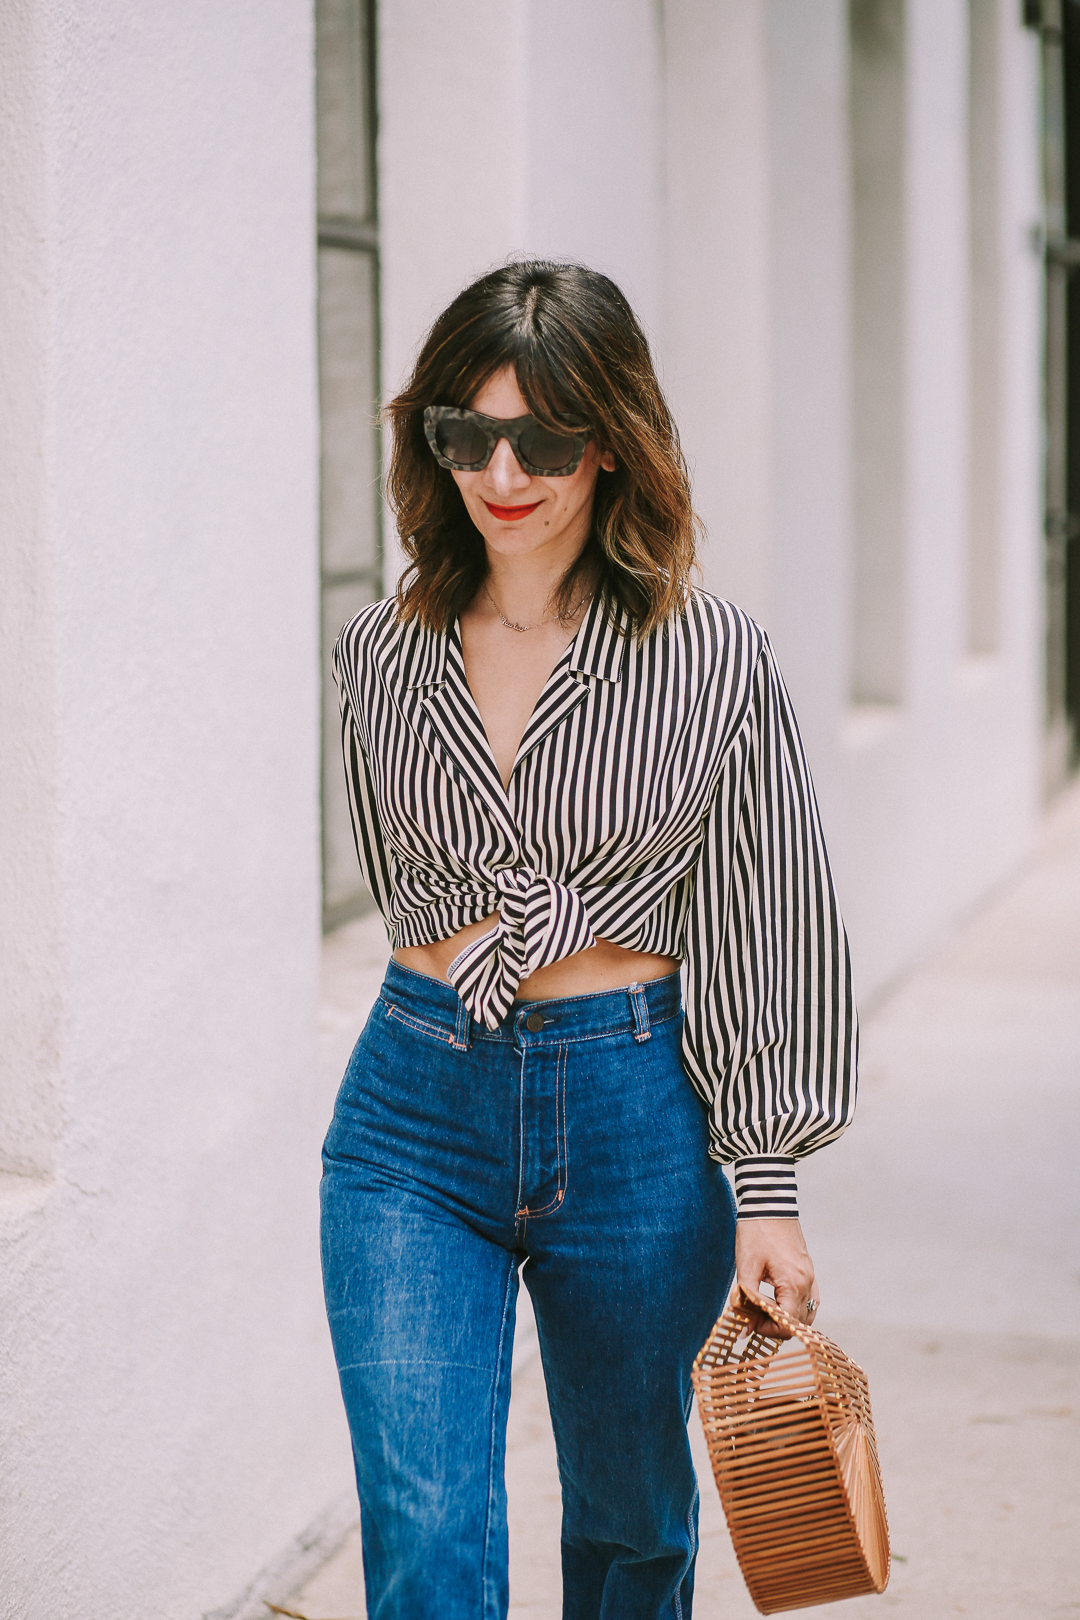 How to Style High Waist Jeans Outfit Ideas for Fall